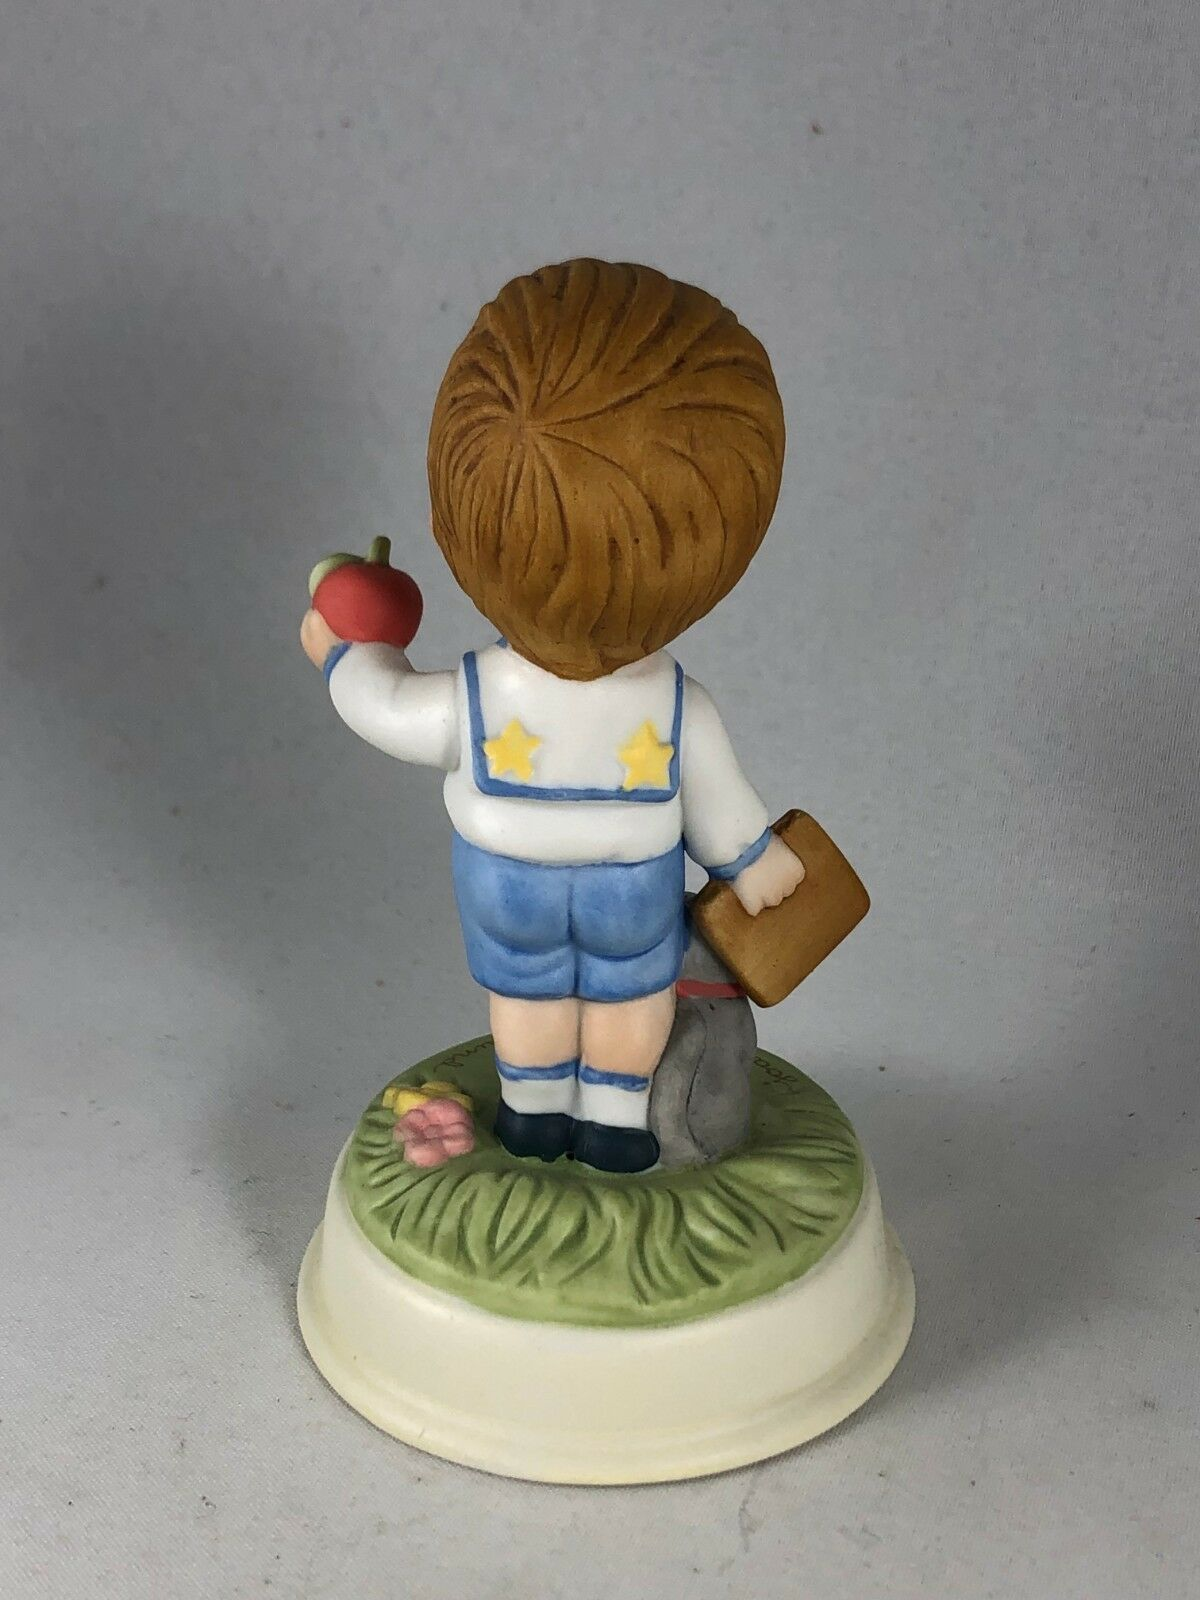 Vintage Avon Cute Little Boy Porcelain Figurine - Joan Walsh Anglund School Days